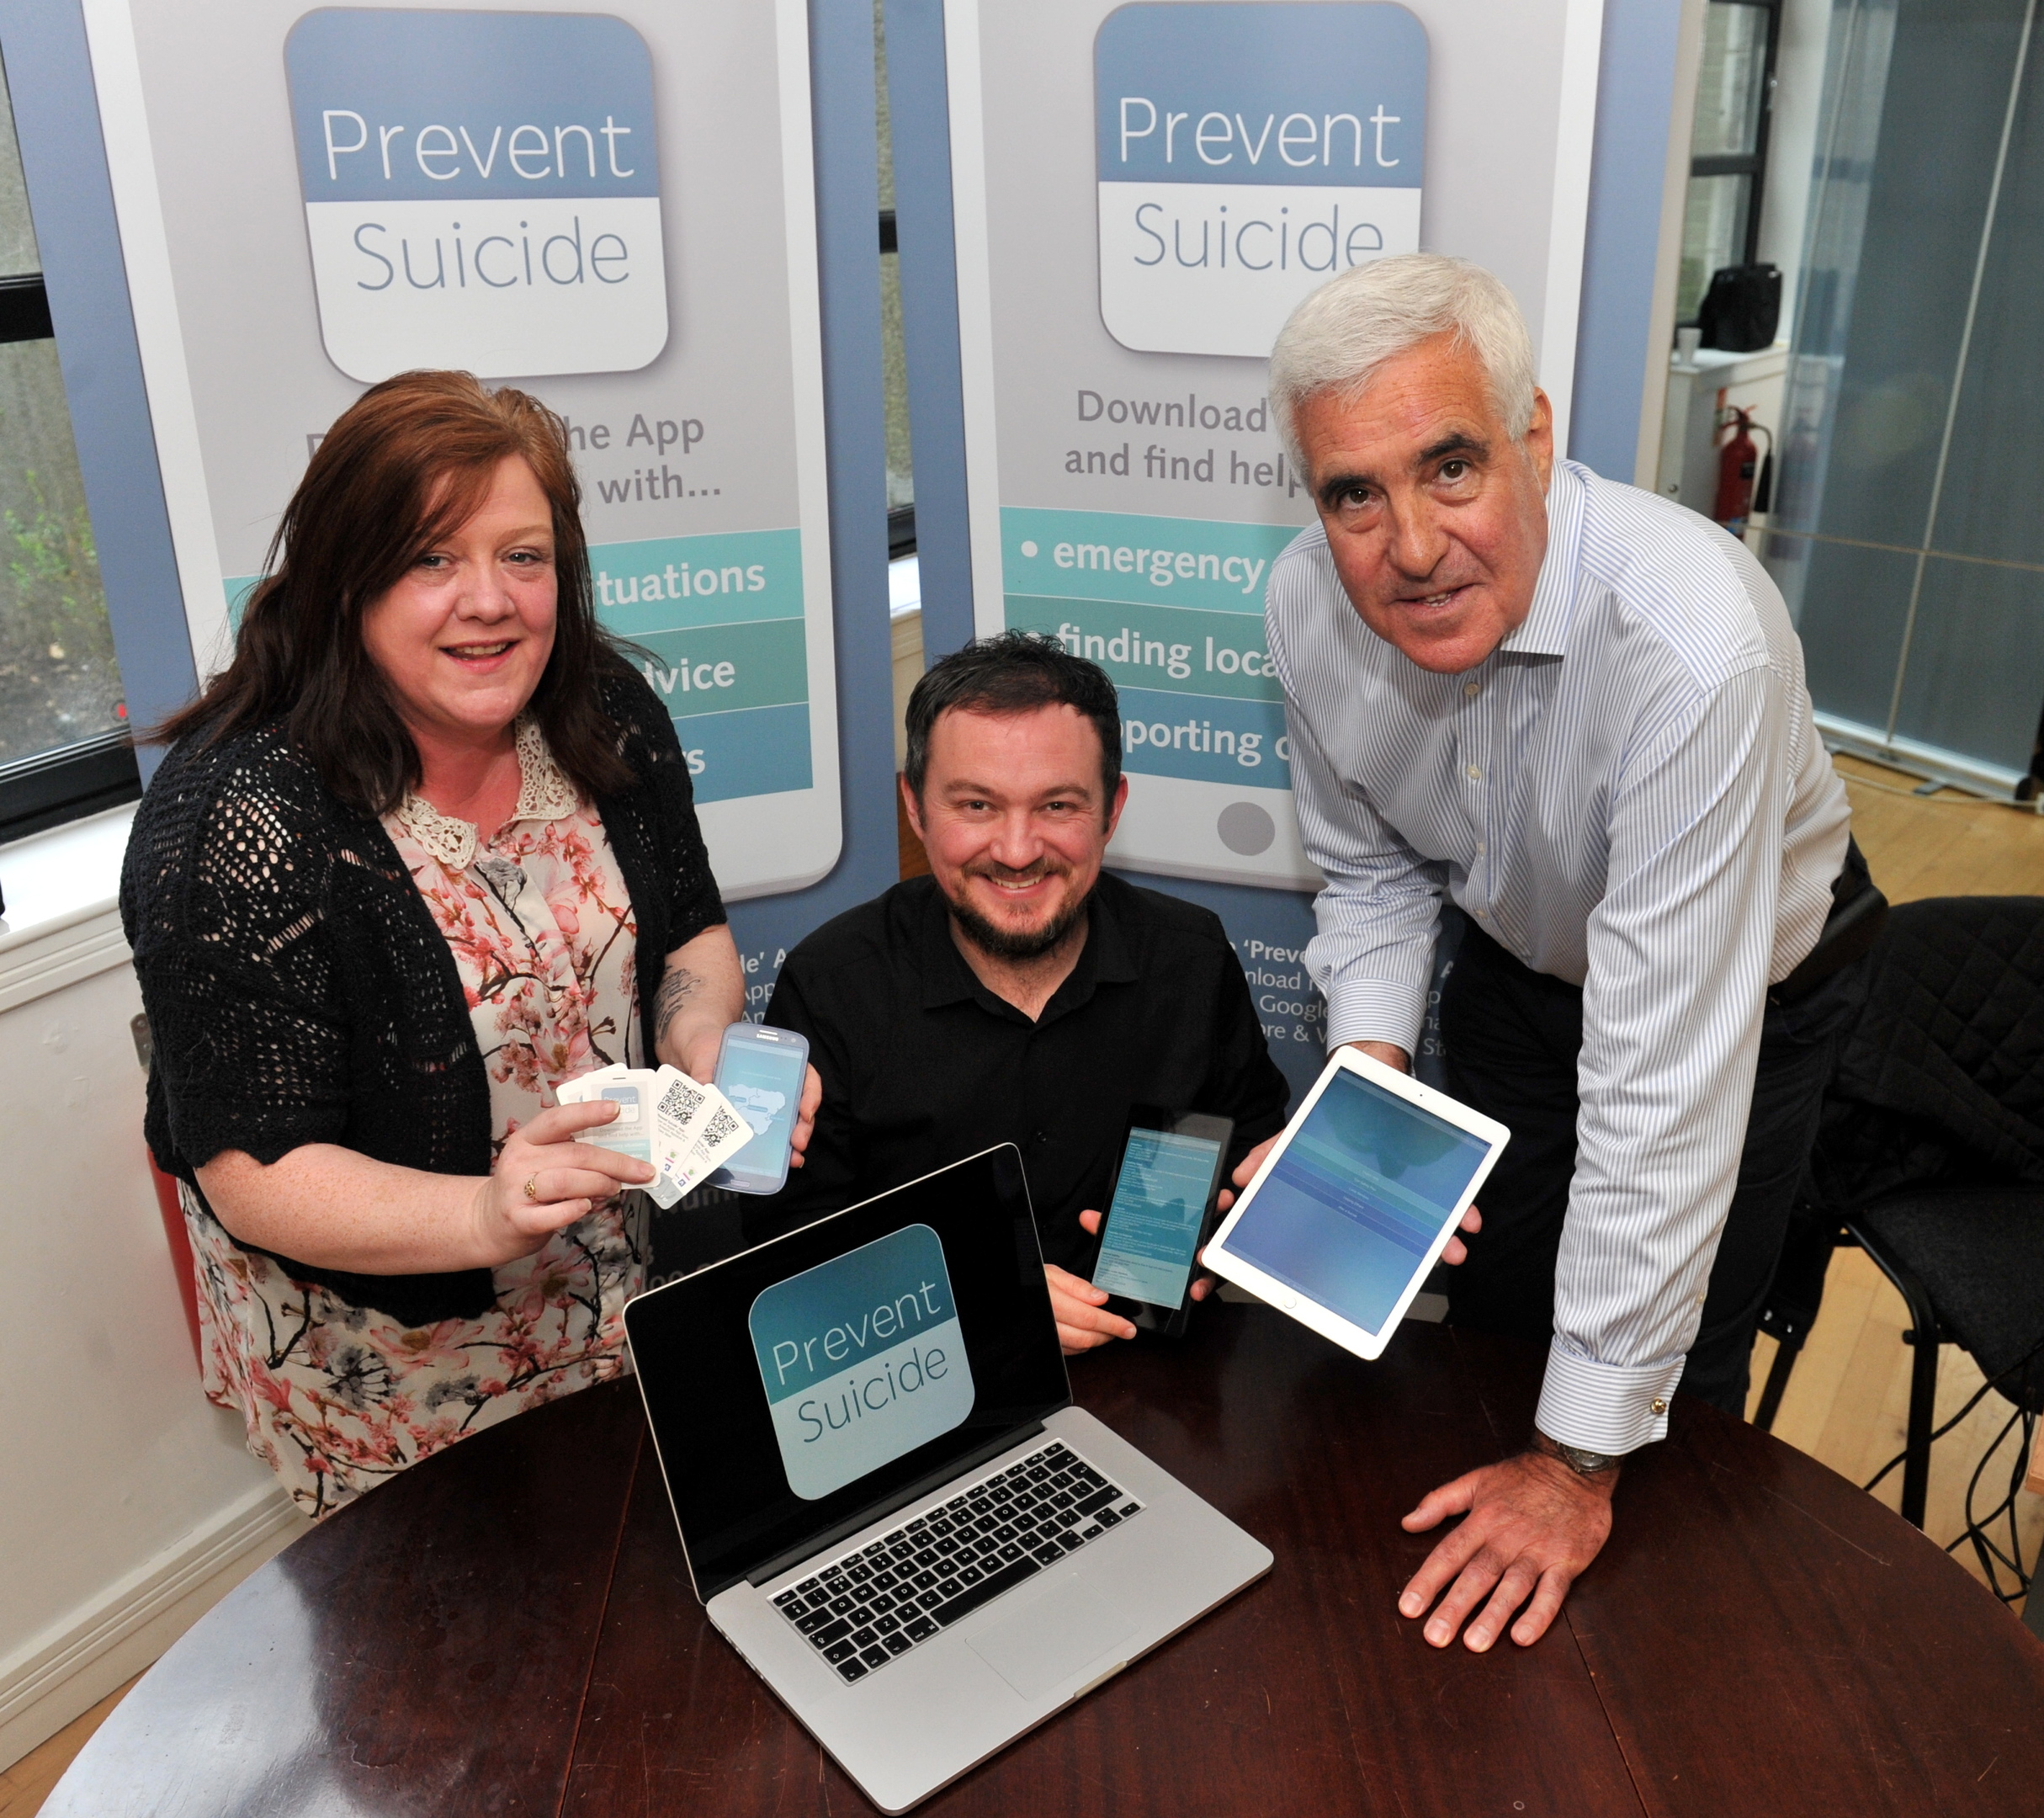 Fiona Weir, app developer John-Paul Thain and Choose Life's Neil Murray at the launch of the app